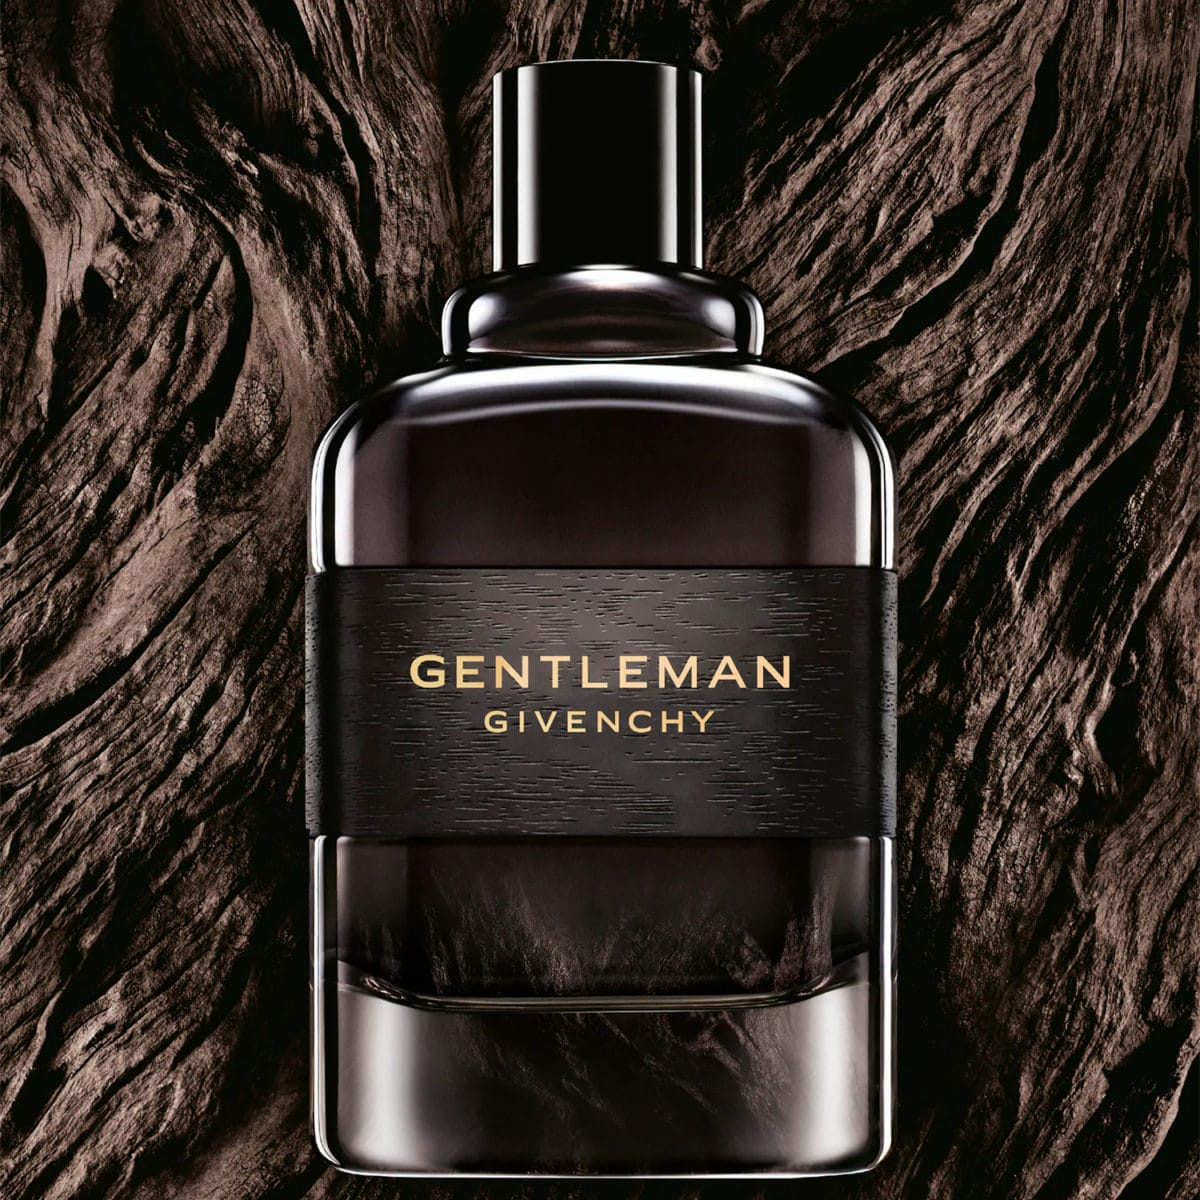 Givenchy make one of the best colognes for men with Gentleman.